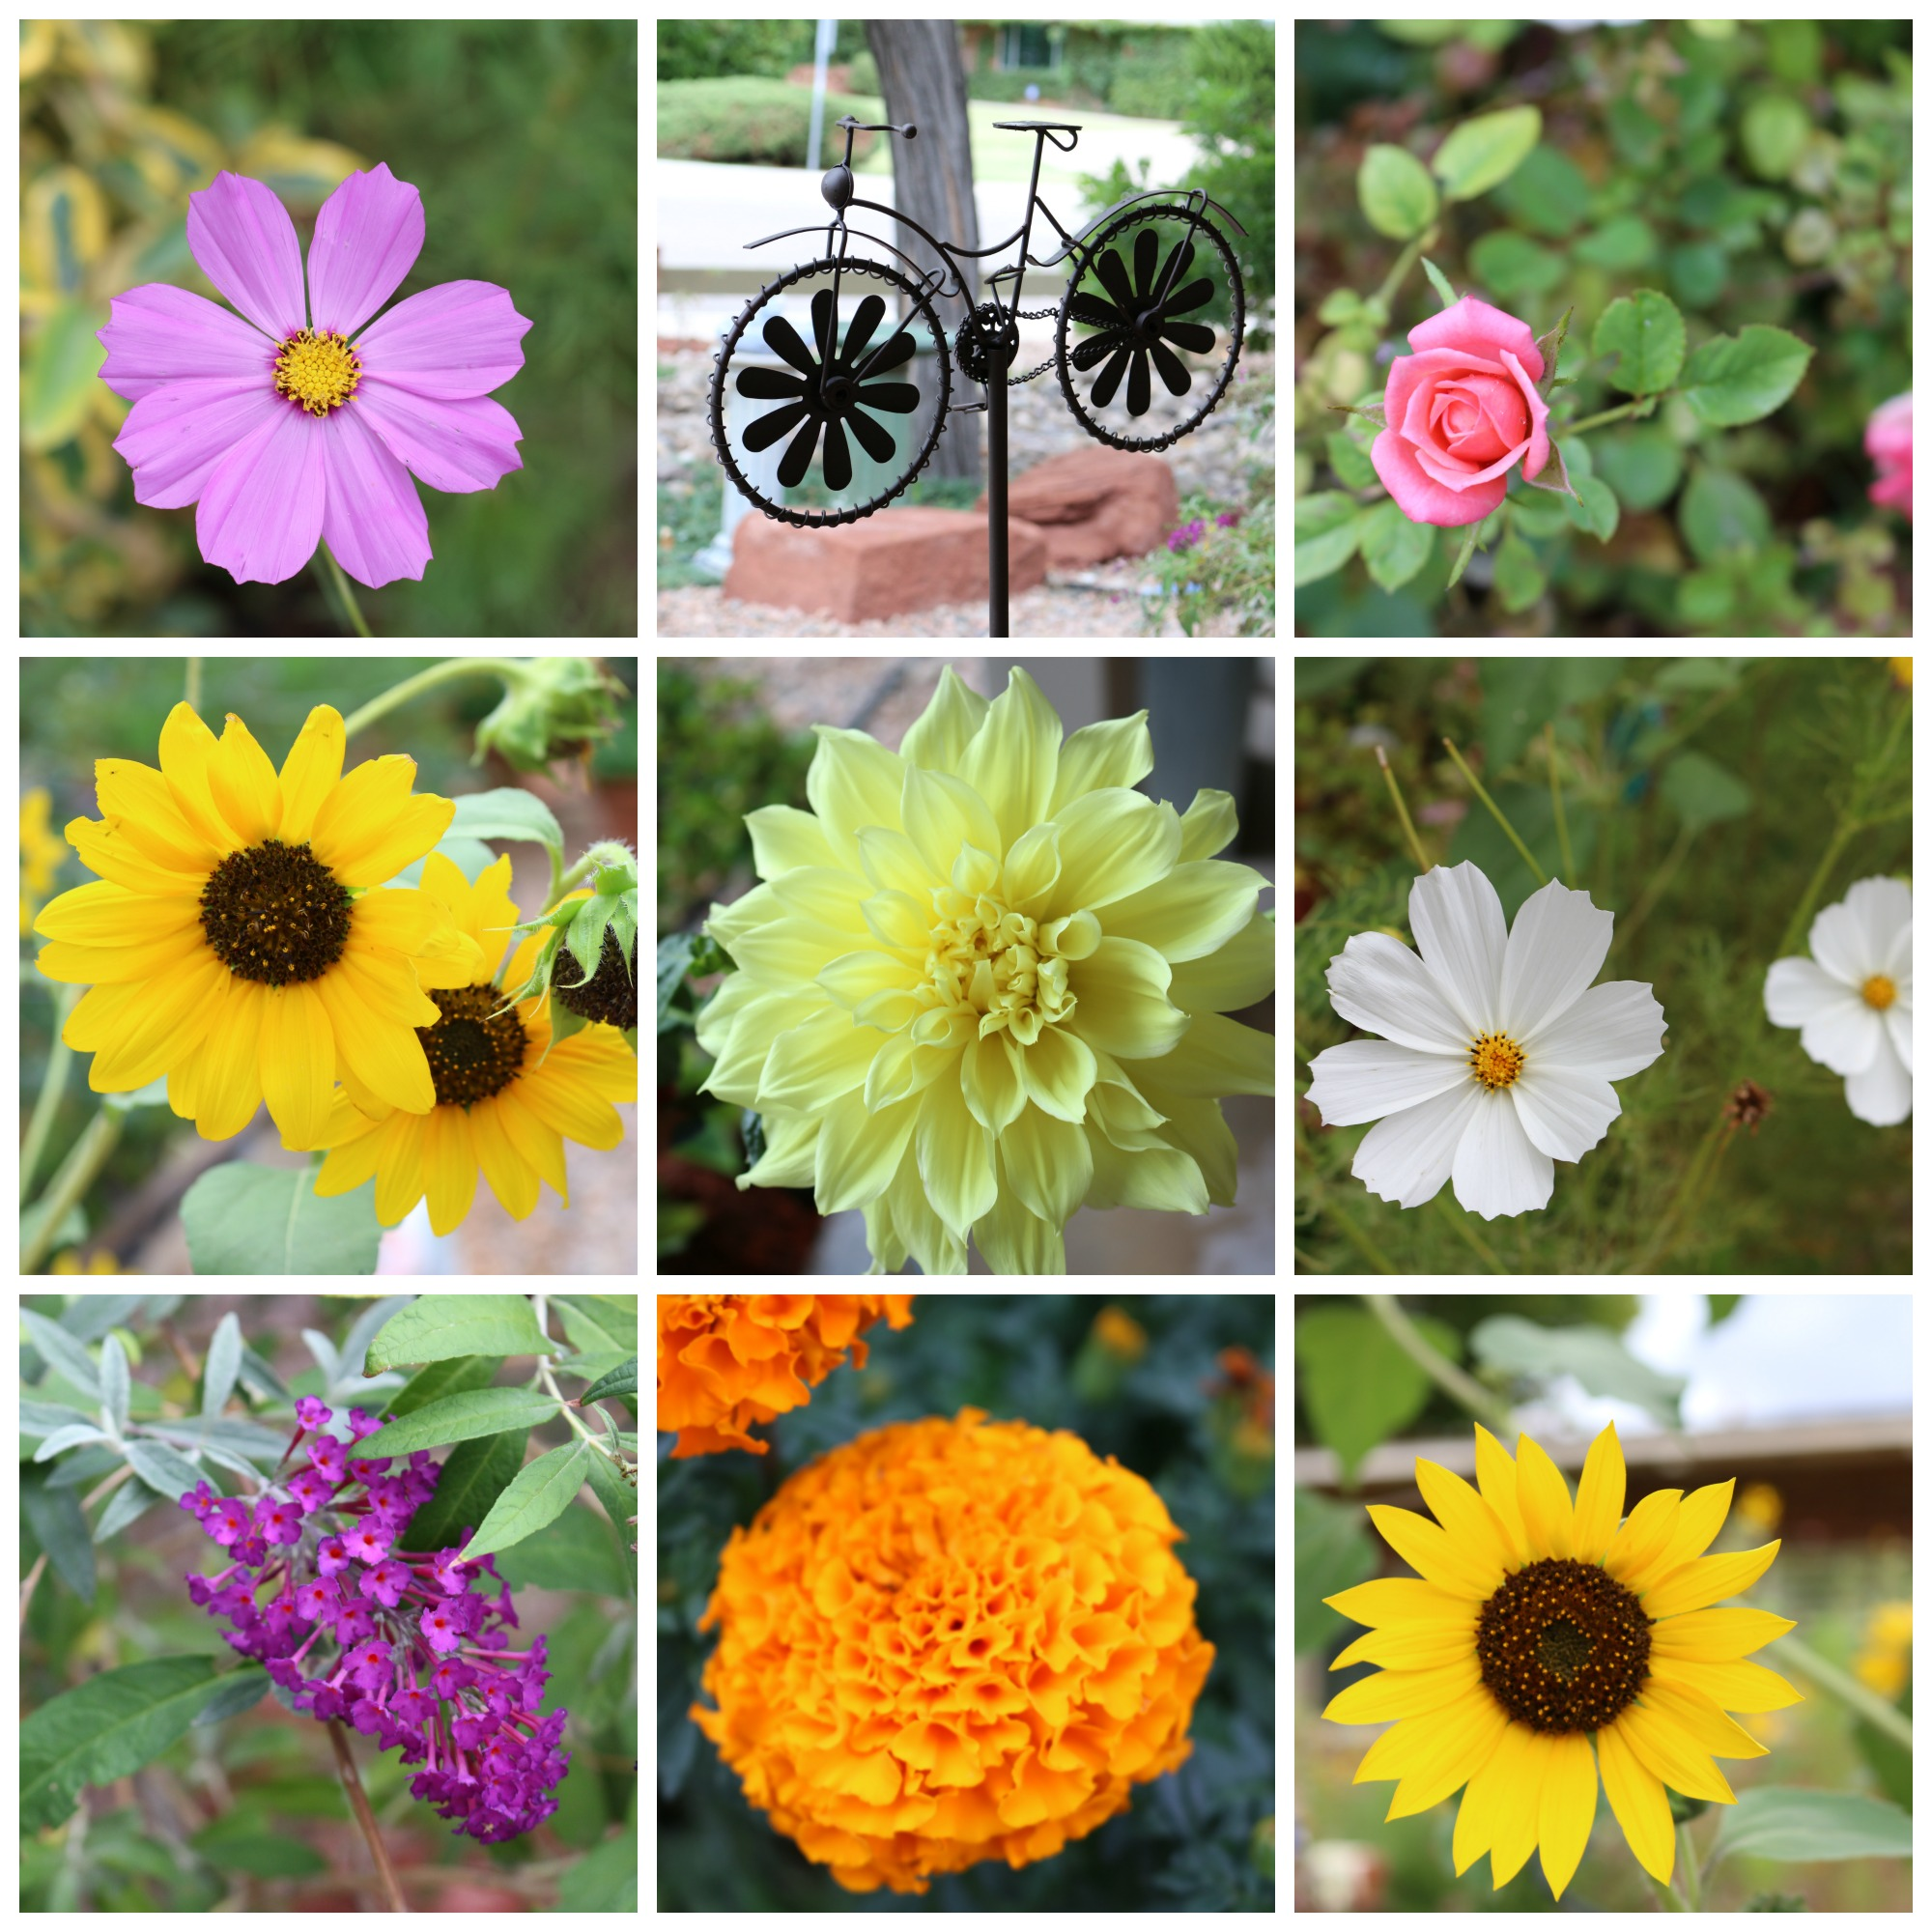 Summer Garden Flowers CeceliasGoodStuff.com Good Food and Good Things for Good People